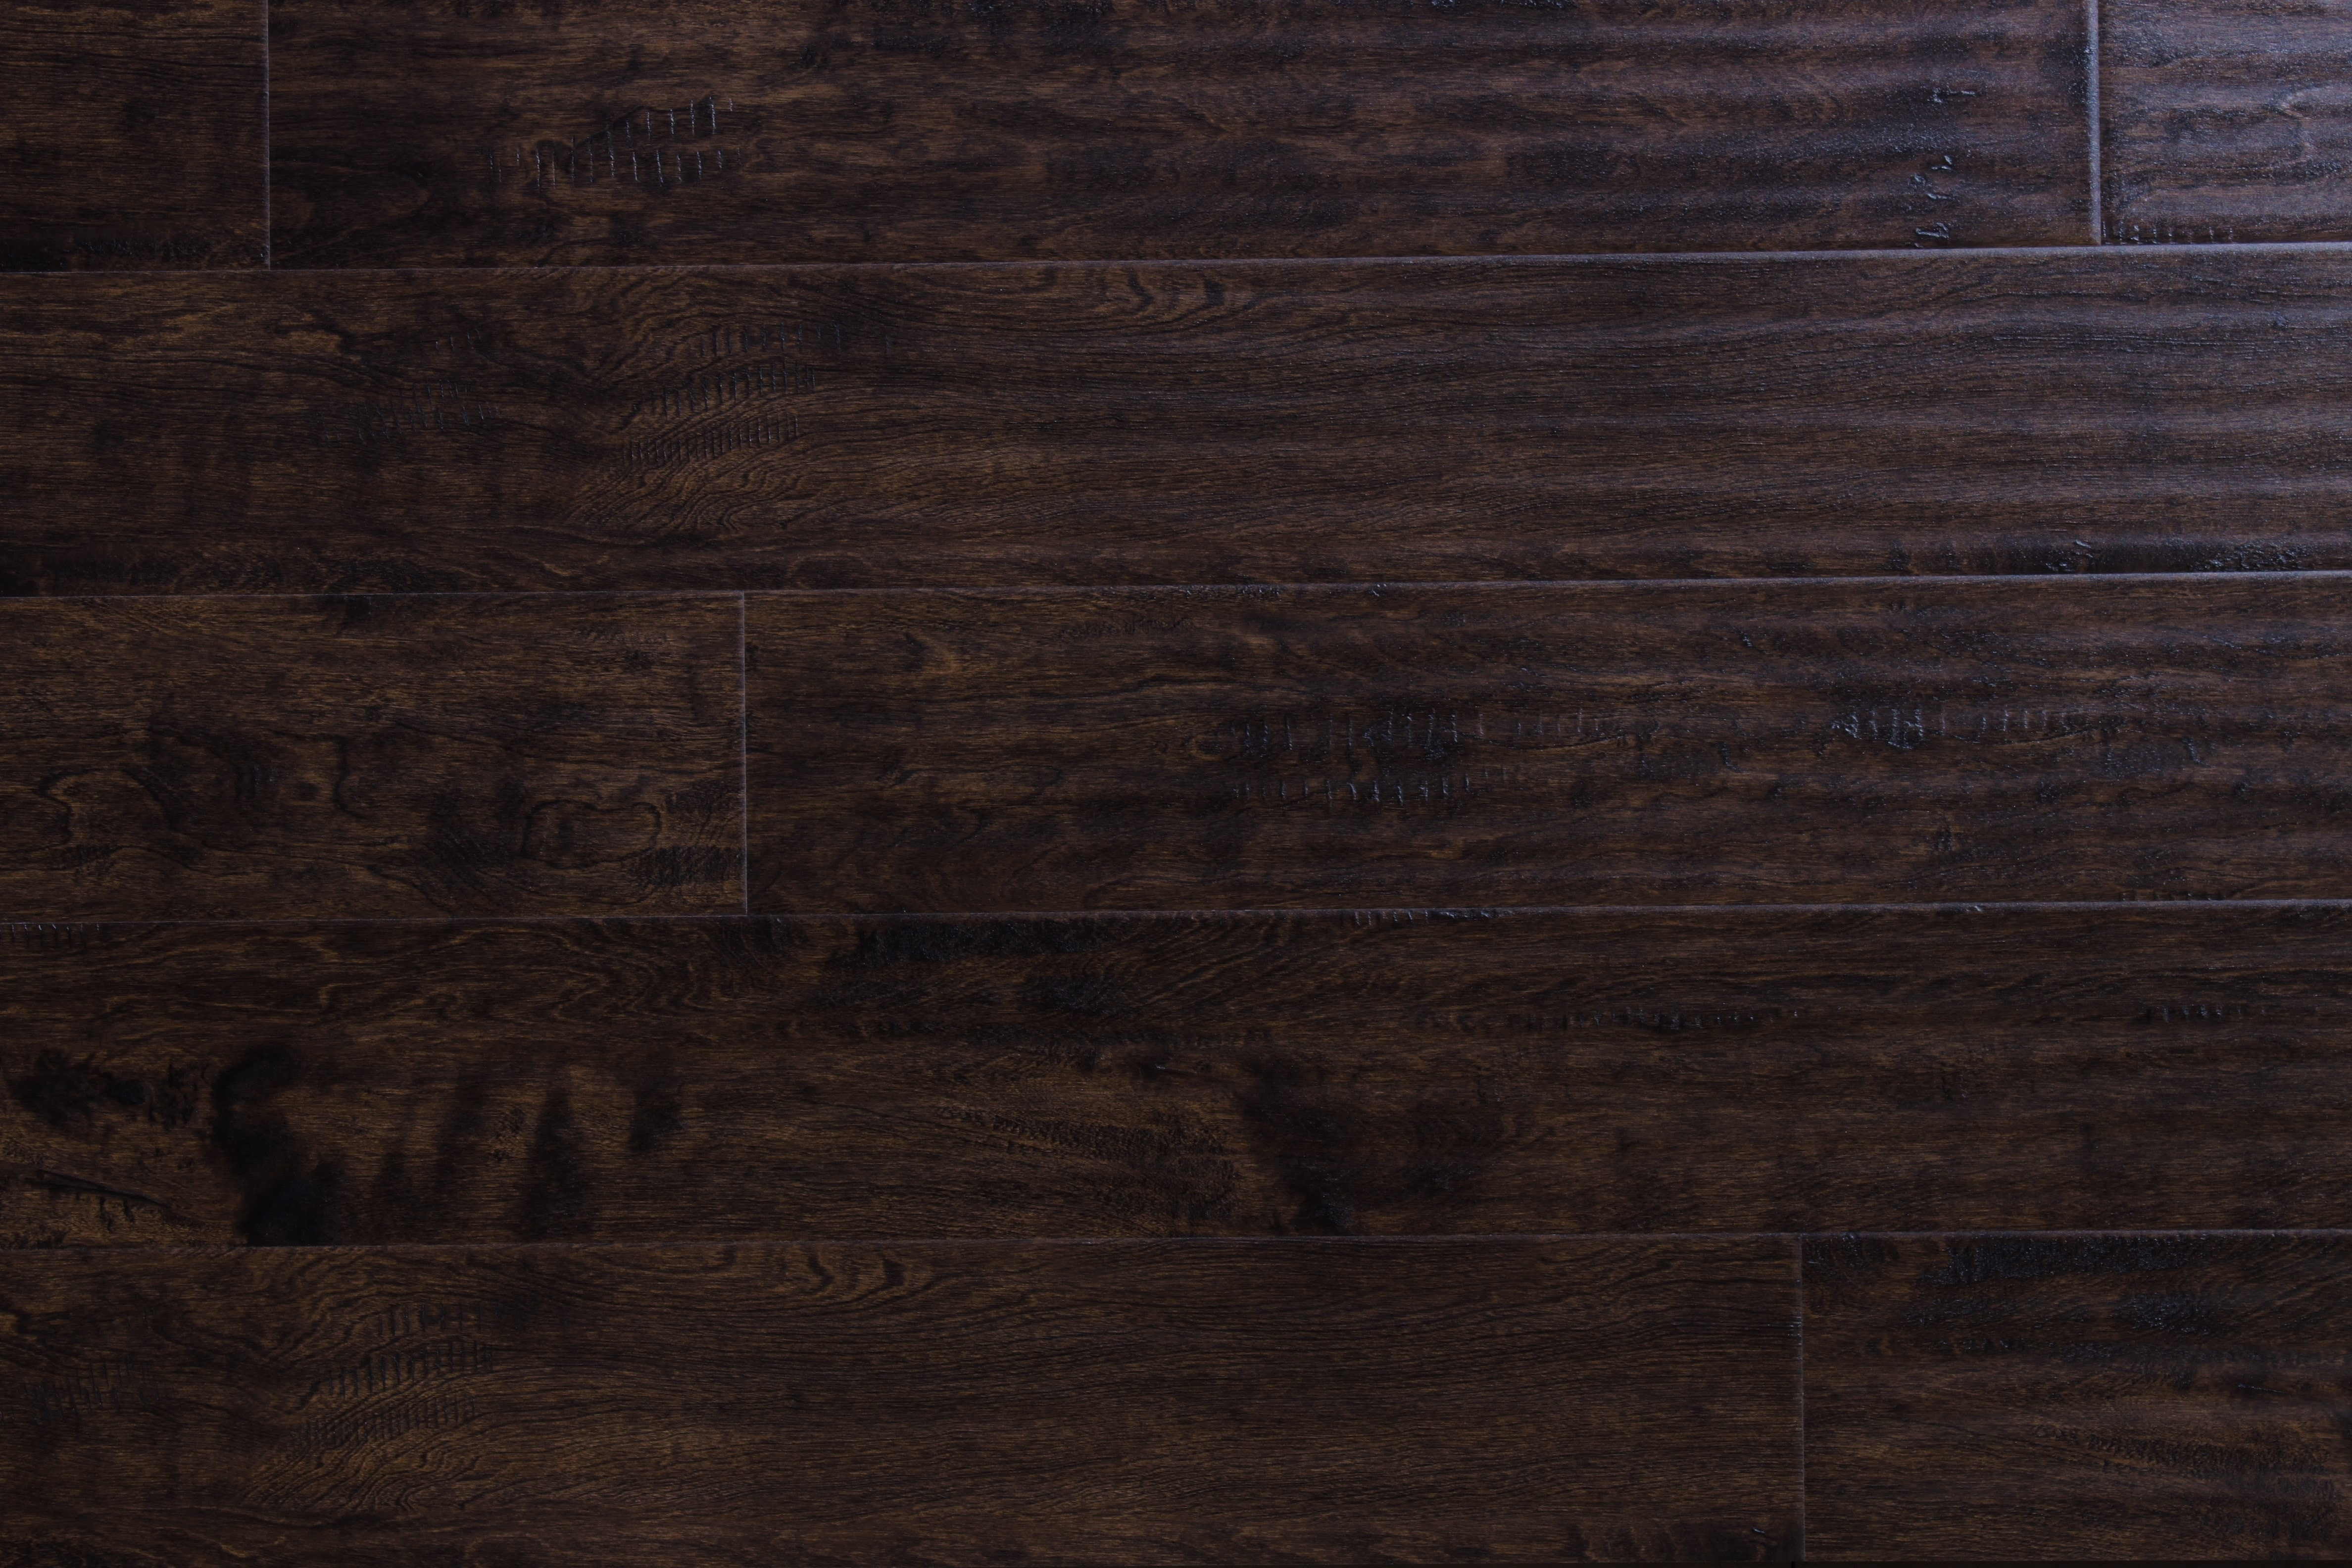 hardwood flooring outlet near me of wood flooring free samples available at builddirecta for tailor multi gb 5874277bb8d3c